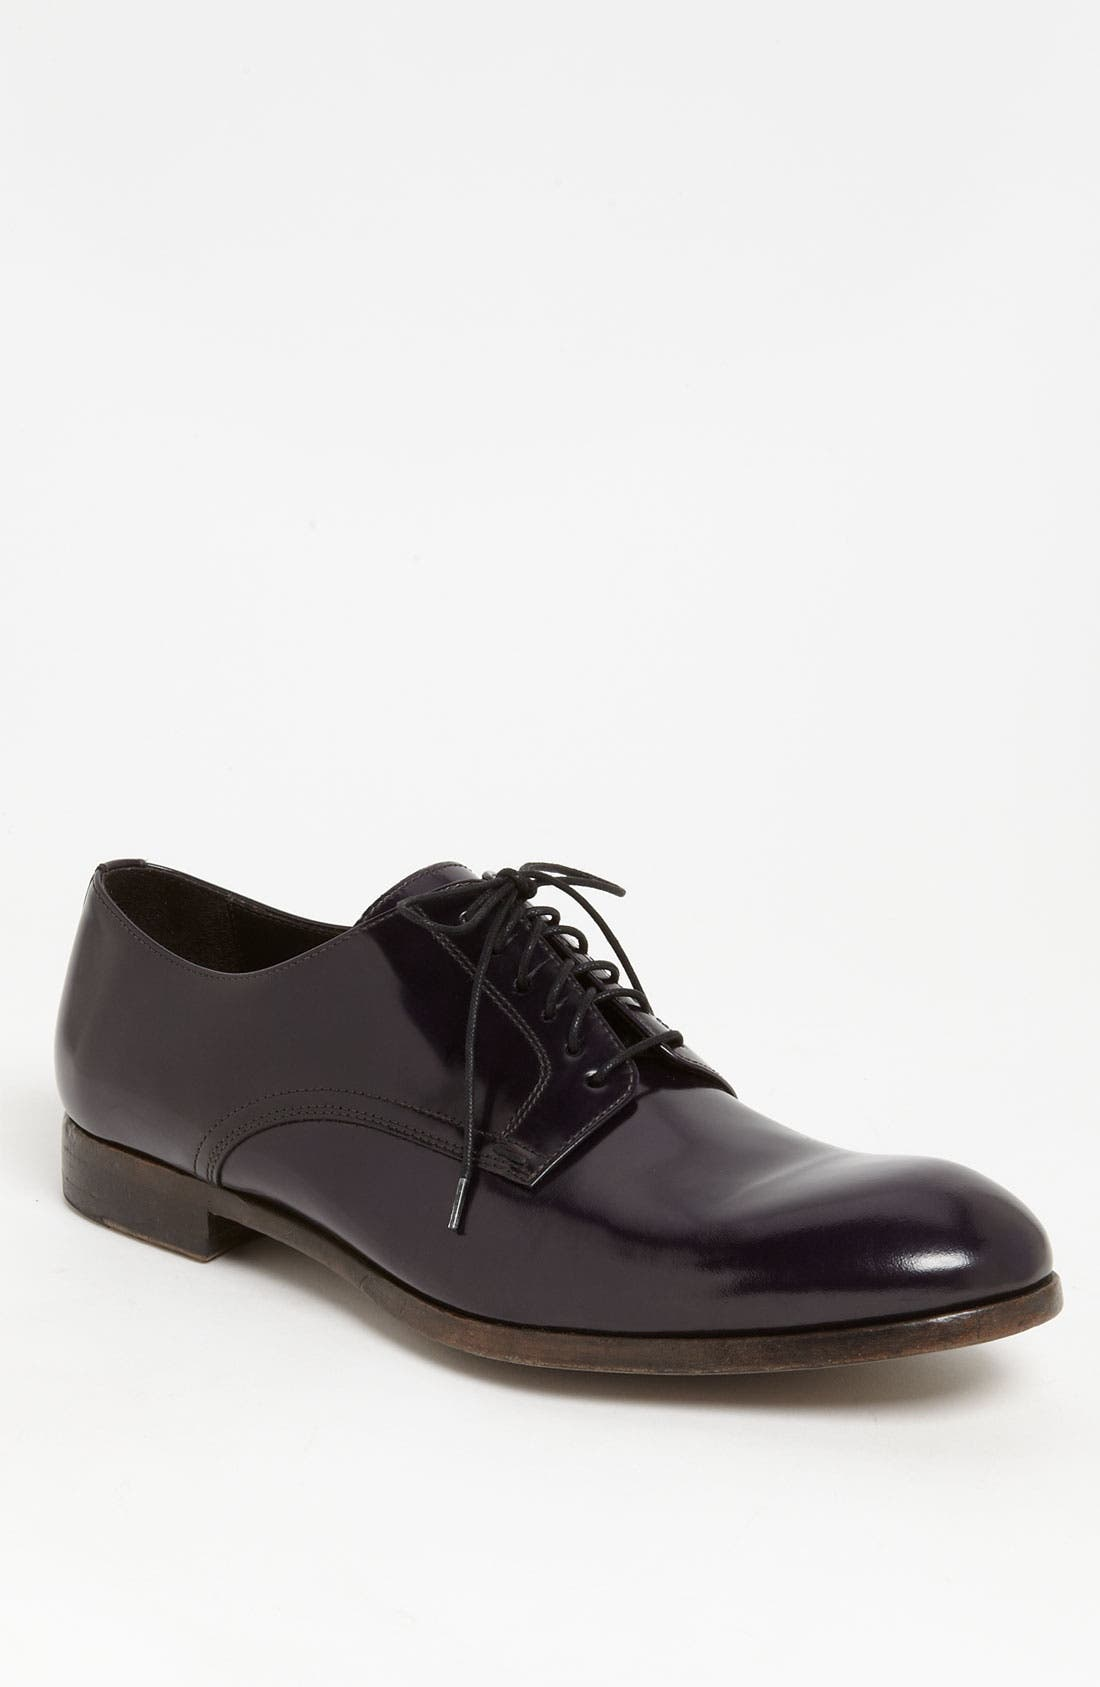 Alternate Image 1 Selected - Paul Smith 'Chagall' Plain Toe Derby